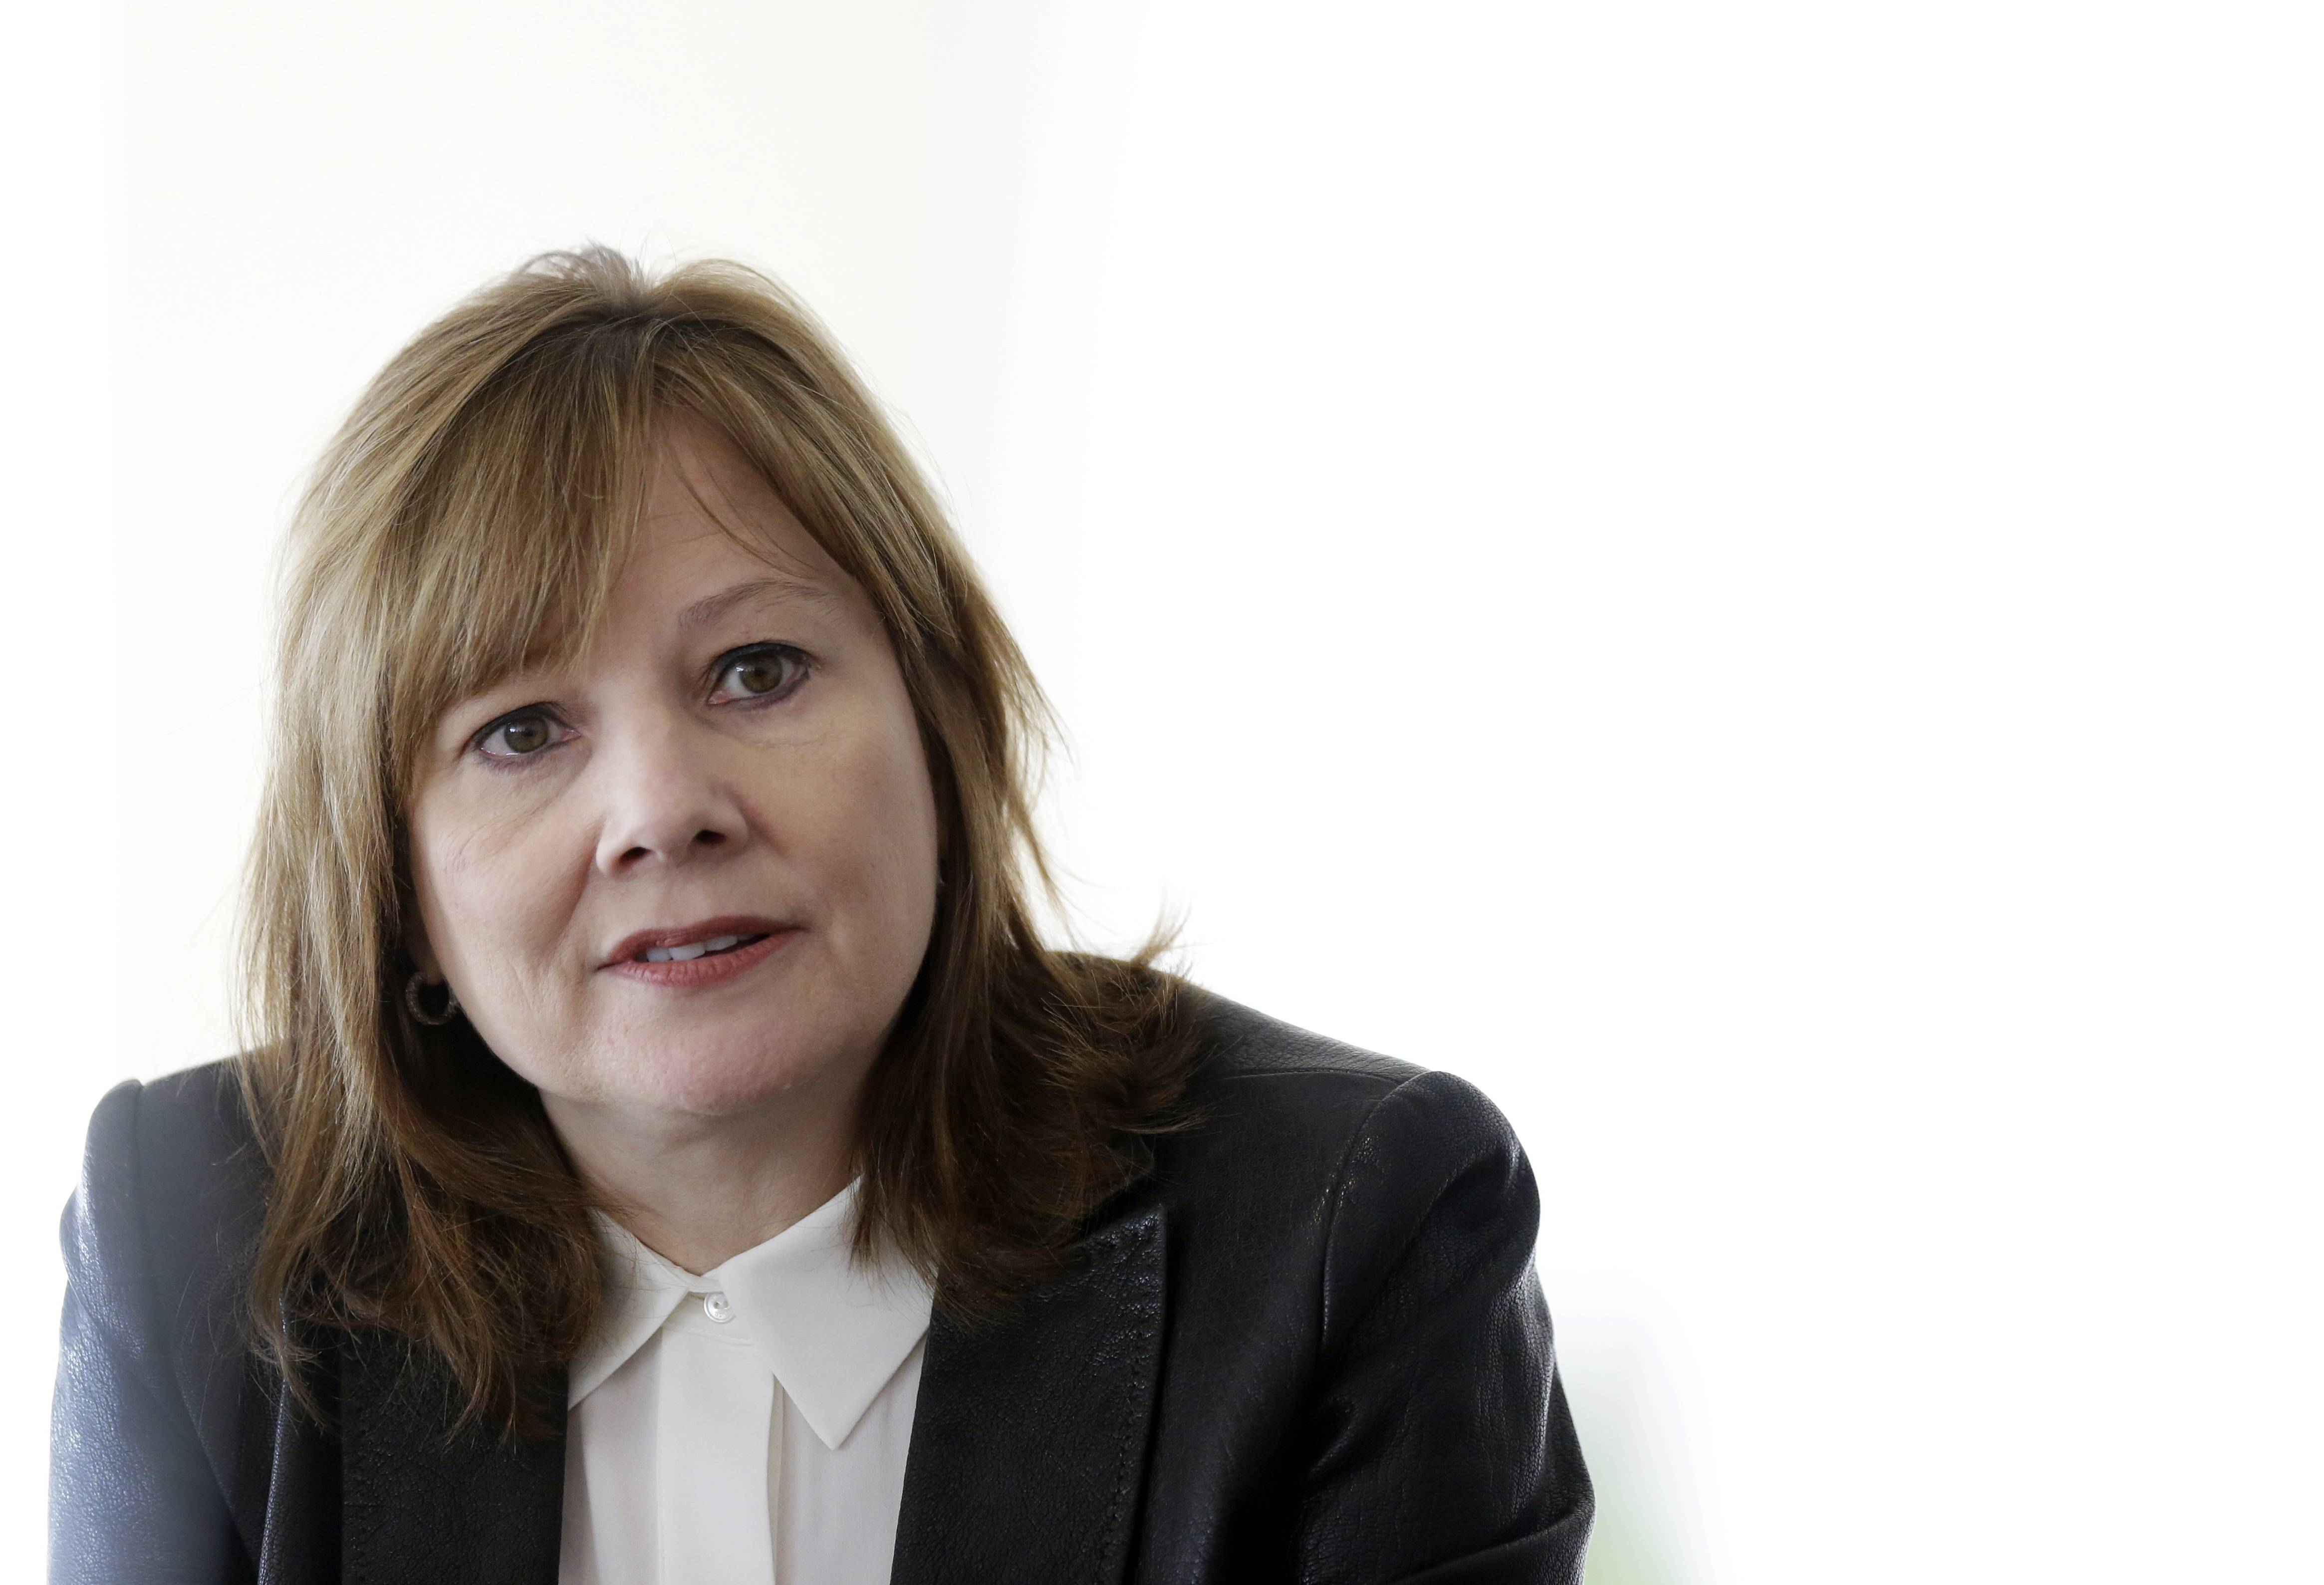 General Motors CEO Mary Barra, seen here on Jan. 23, apologized for deaths linked to the delayed recall of 1.6 million small cars, saying the company took too long to bring the cars in for repairs.